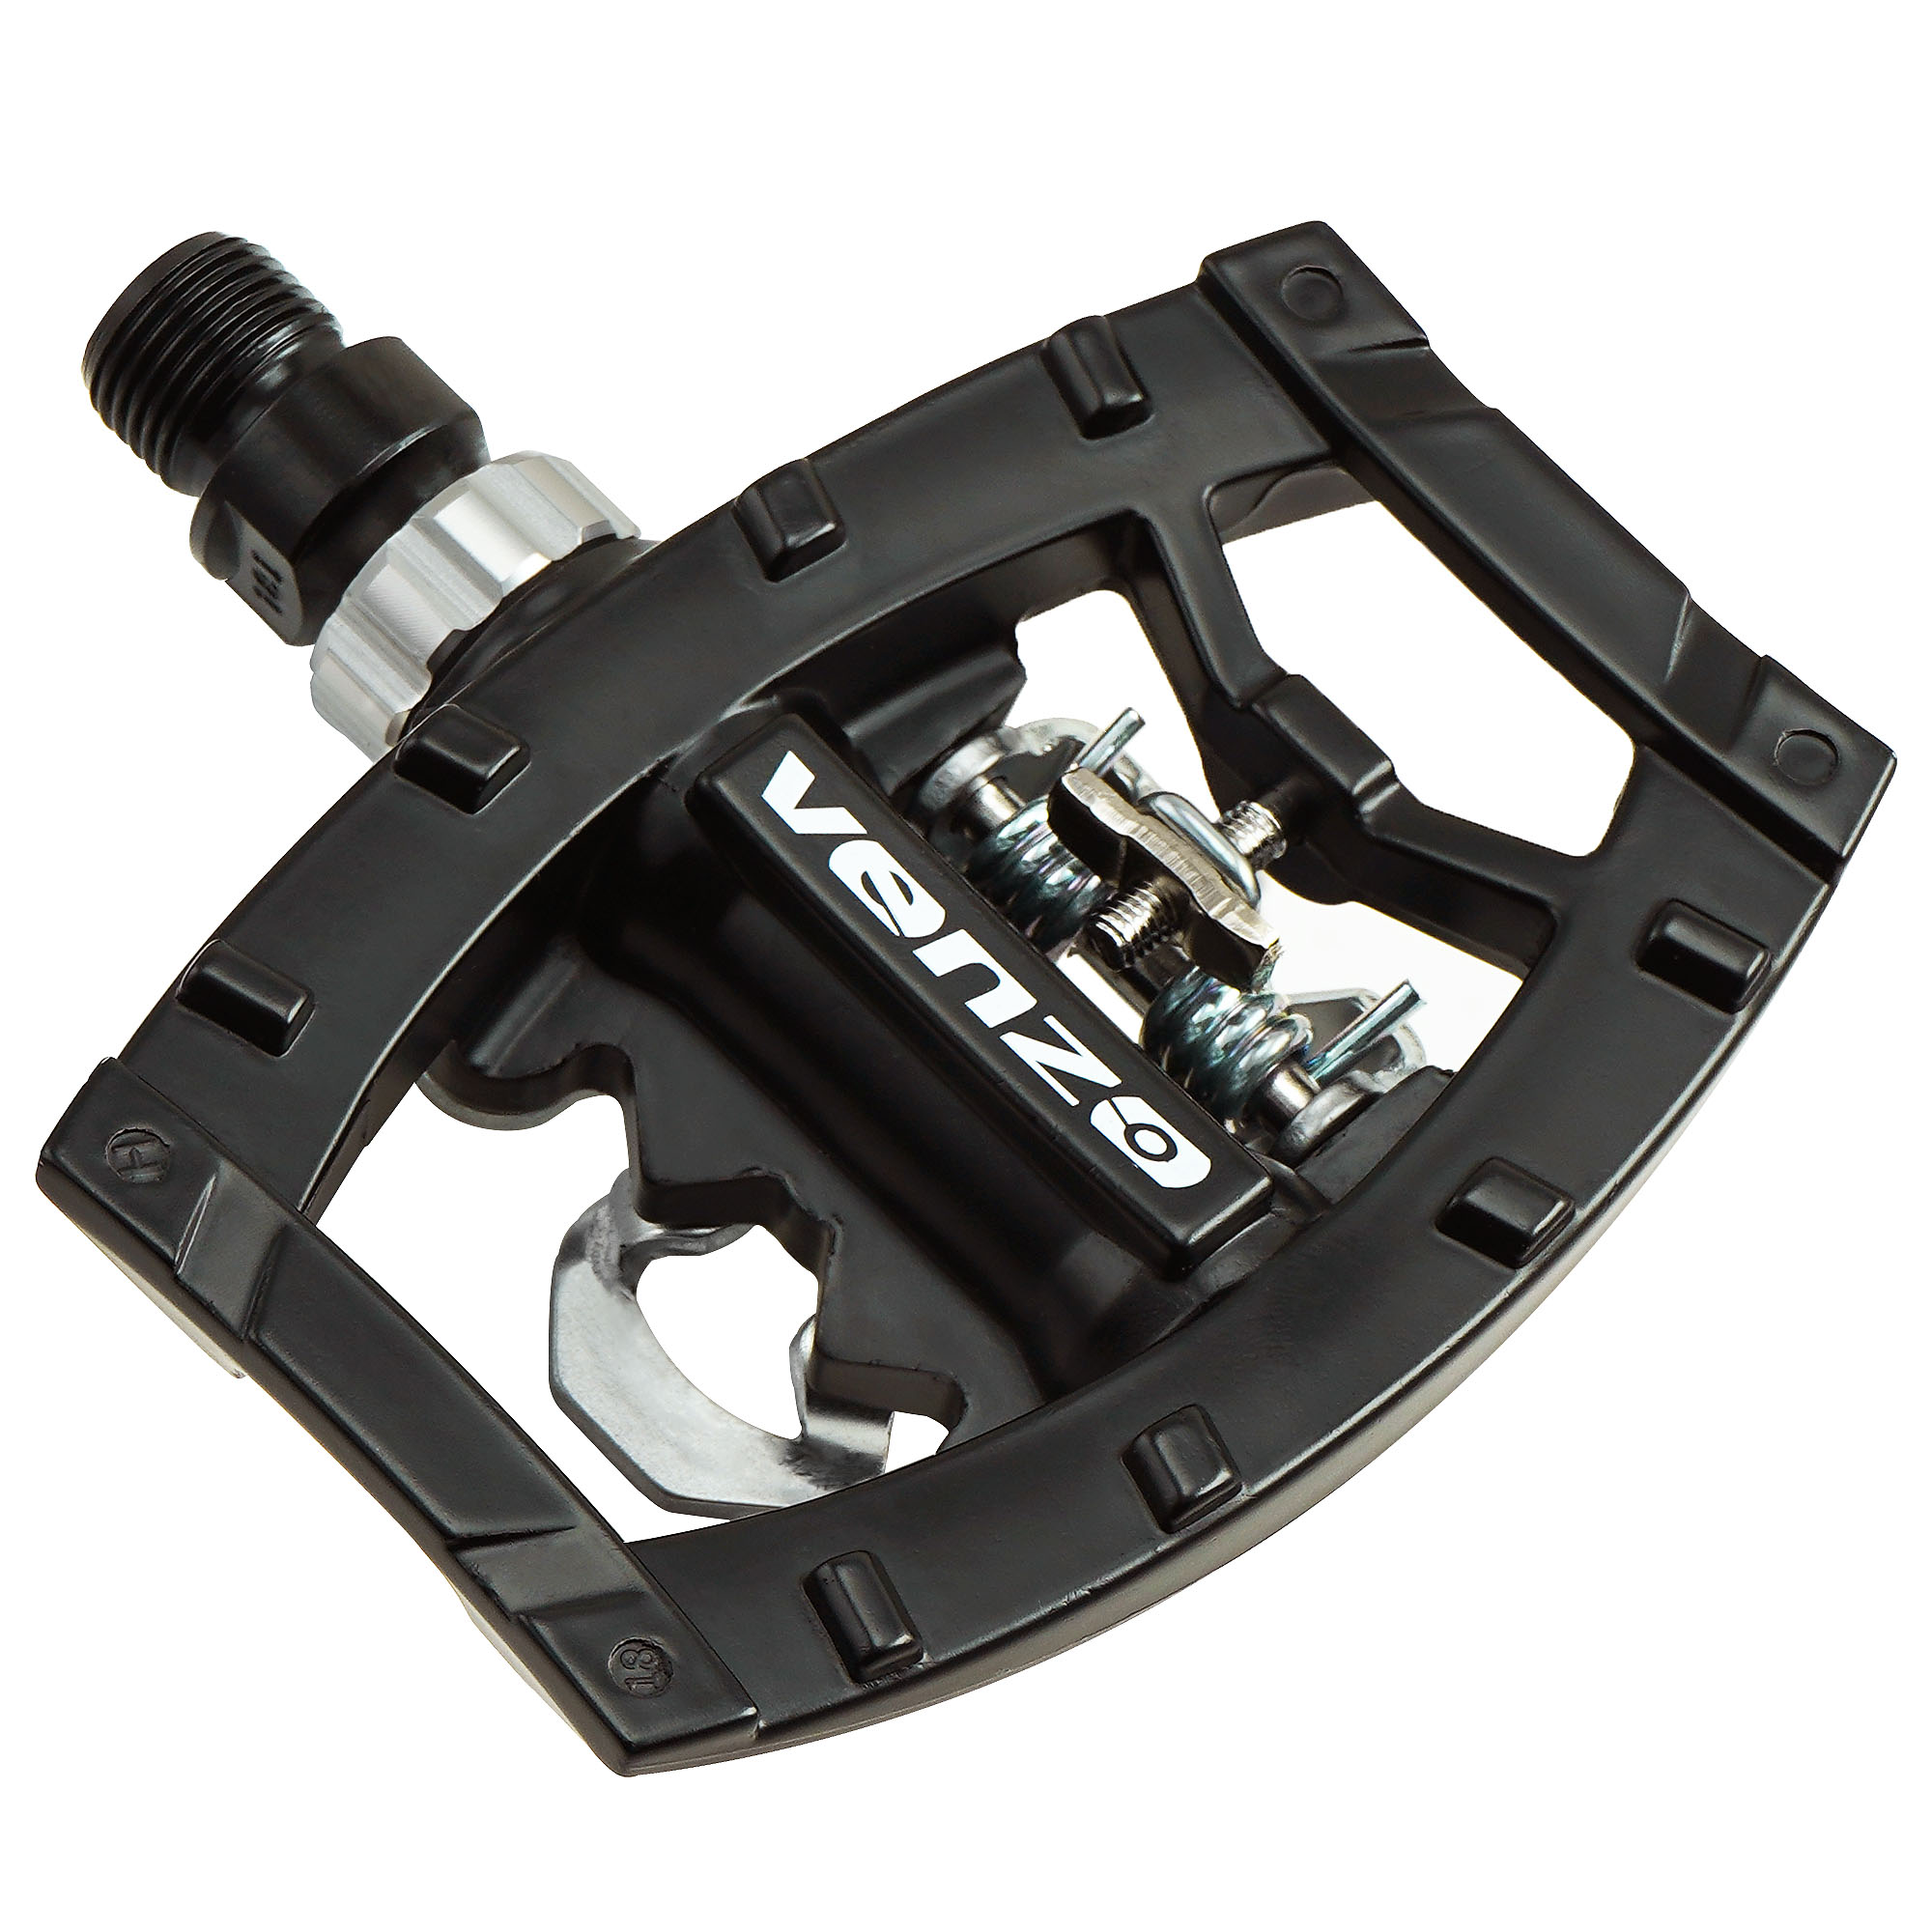 "Venzo Dual Function Platform Shimano SPD Road Touring  9/16"" Pedals Black with Cleats"